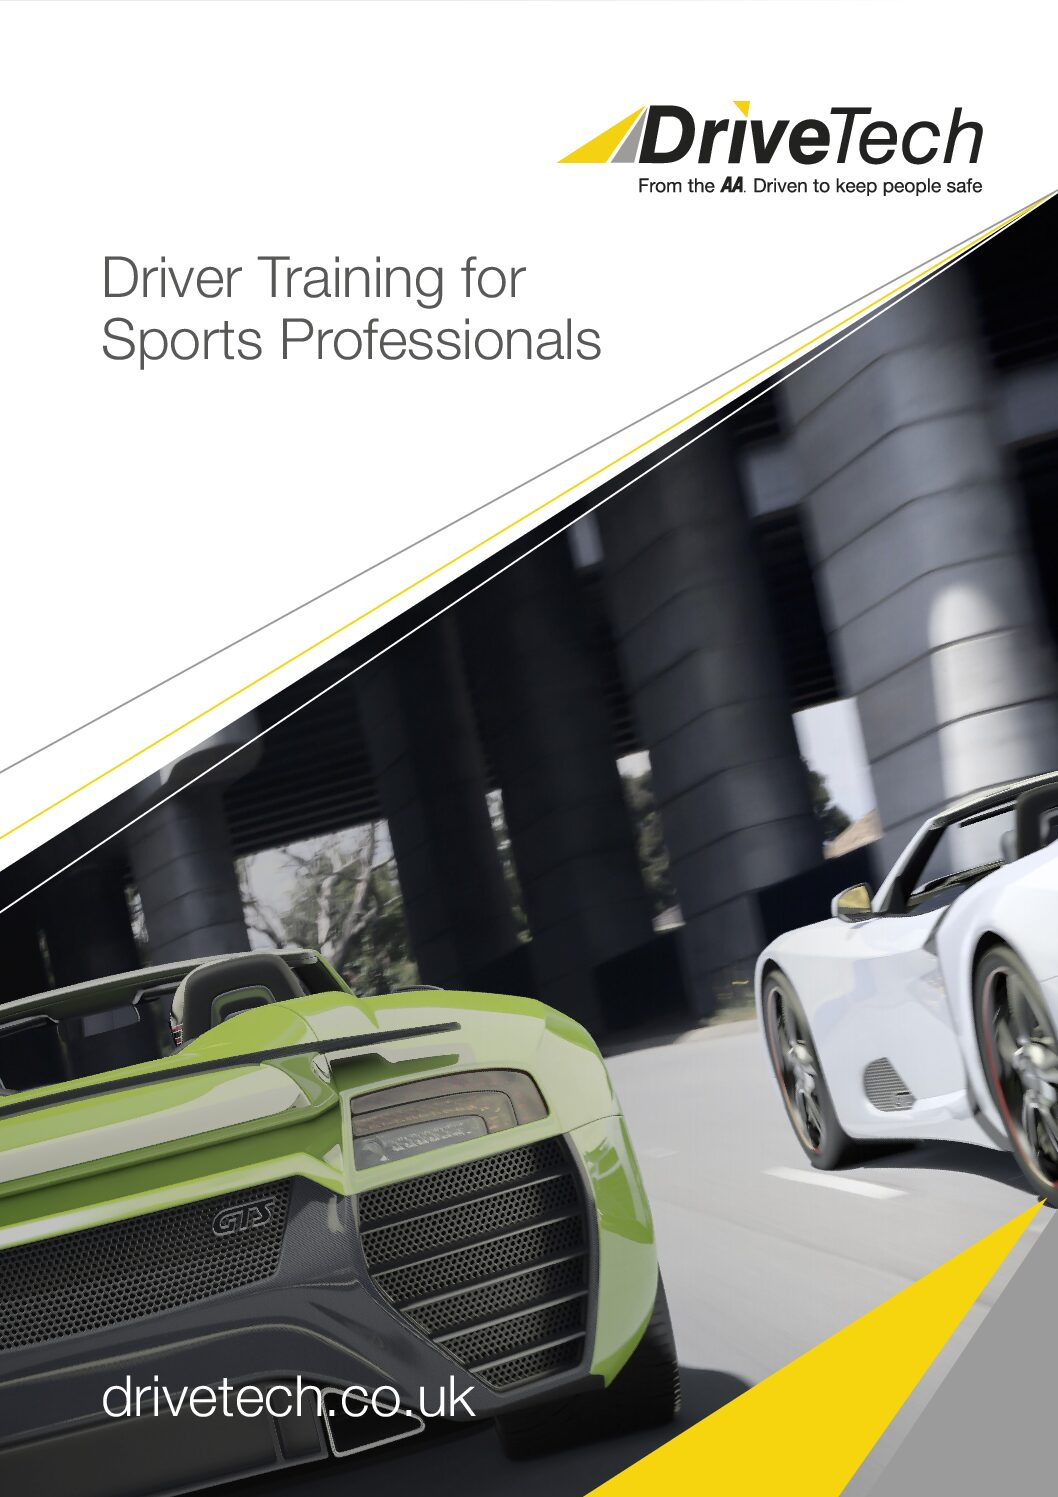 Brochure – Driver Training for Sports Professionals